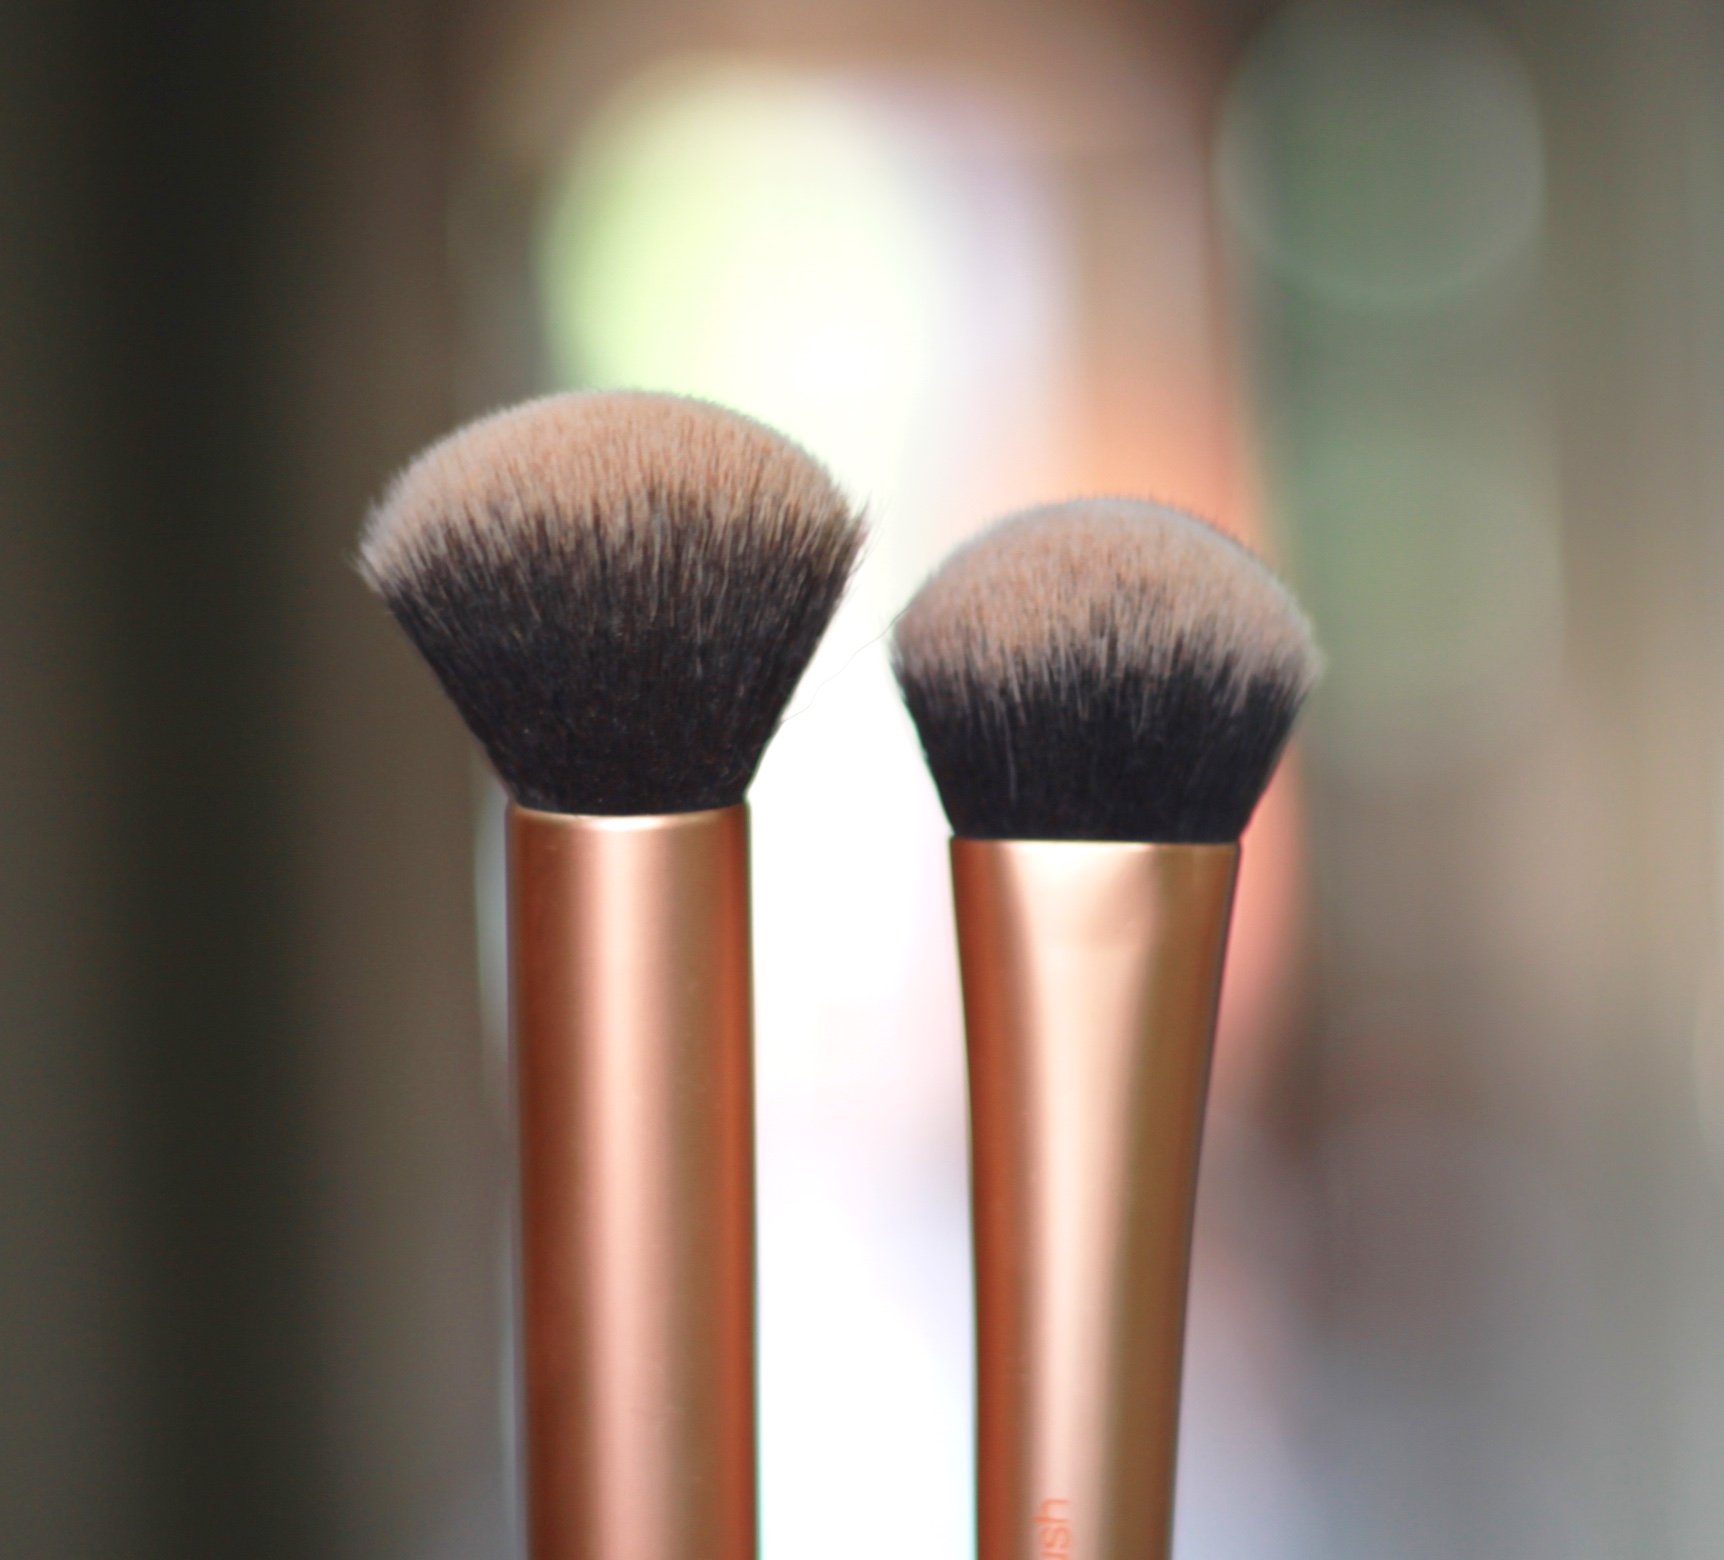 Most used makeup brushes, makeup brushes, real techniques, mac brushes, QVS brushes, mac 217, real techniques expert face brush, real techniques buffing brush, kabuki brush, mac 167 se